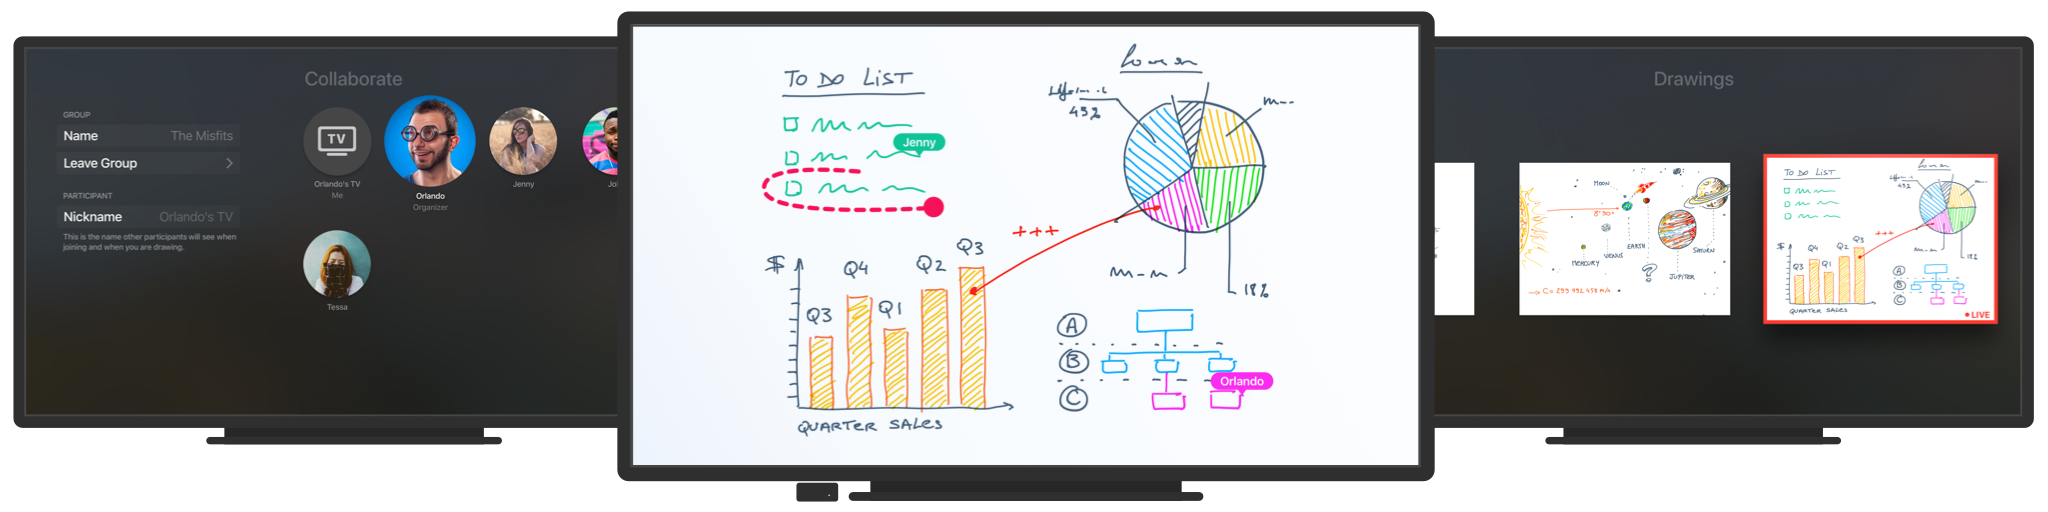 Inko: Collaborative Whiteboard for iPad, iPhone, and Apple TV — About